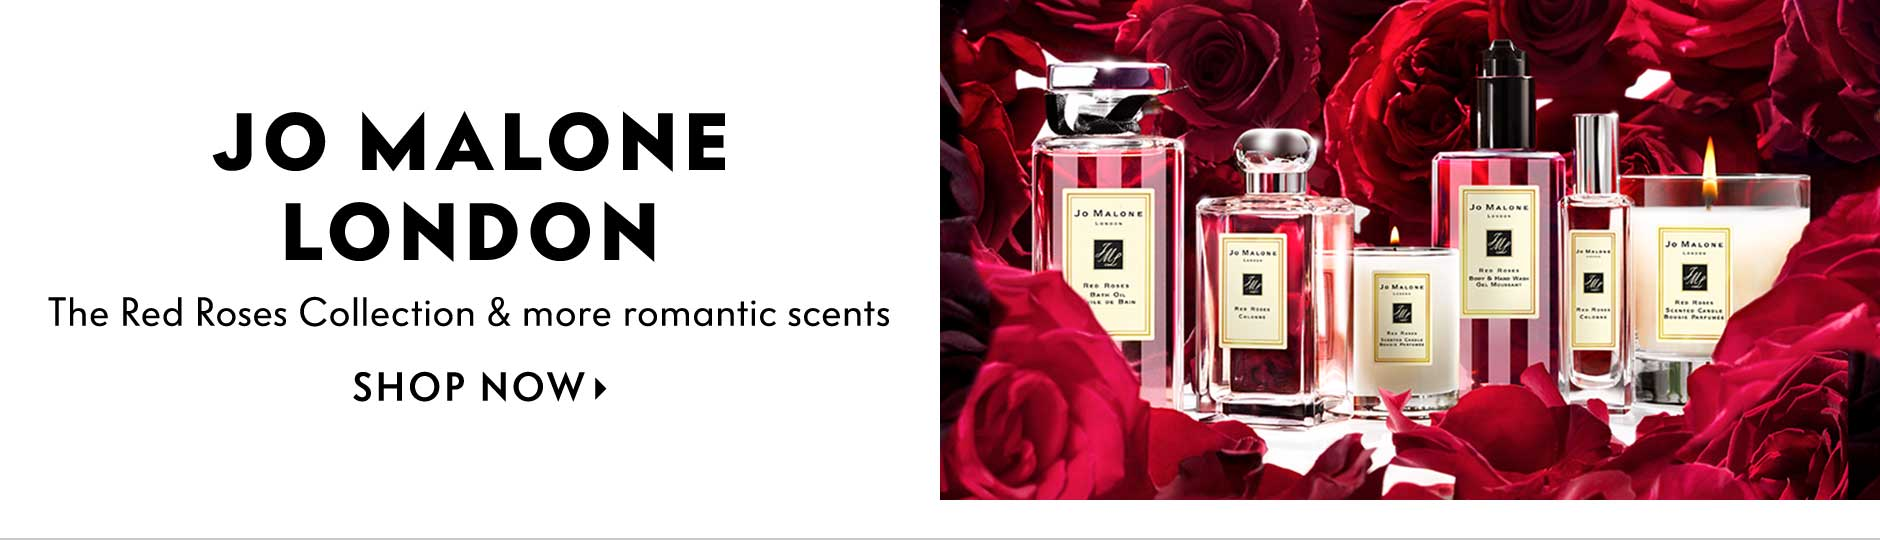 Jo Malone London - the red roses collection & more romantic scents